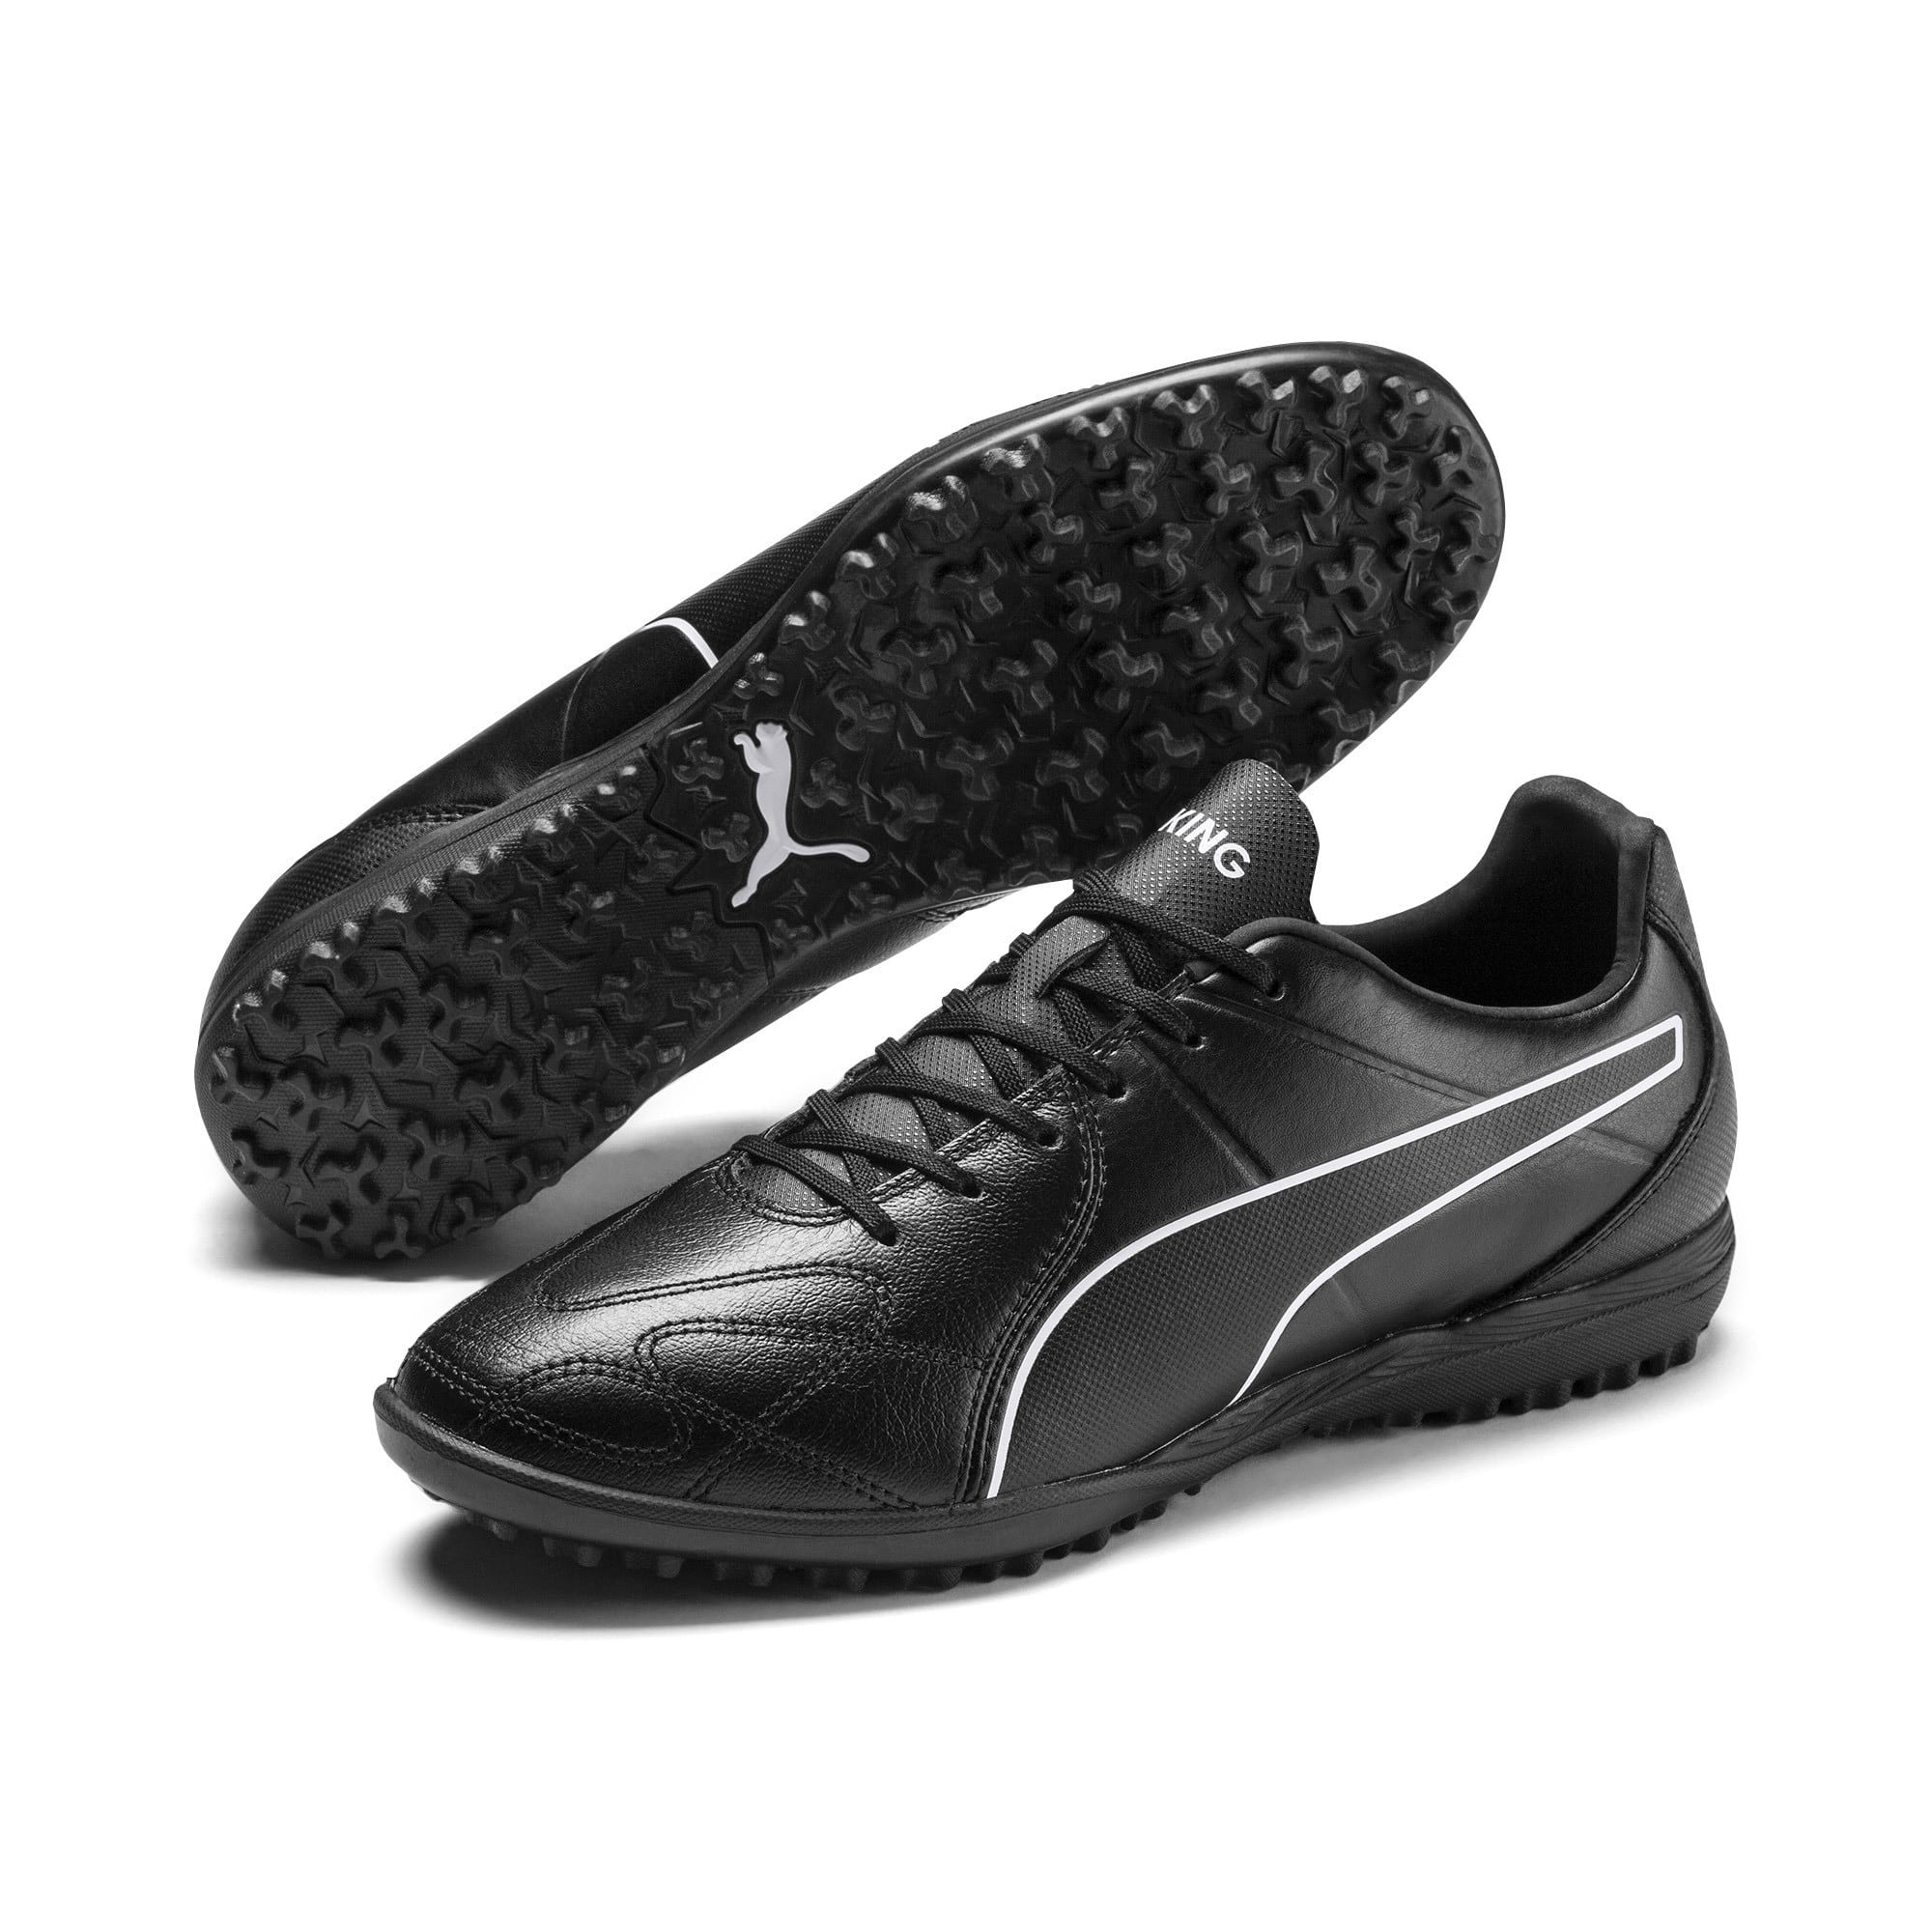 Thumbnail 4 of KING Hero TT Football Boots, Puma Black-Puma White, medium-IND